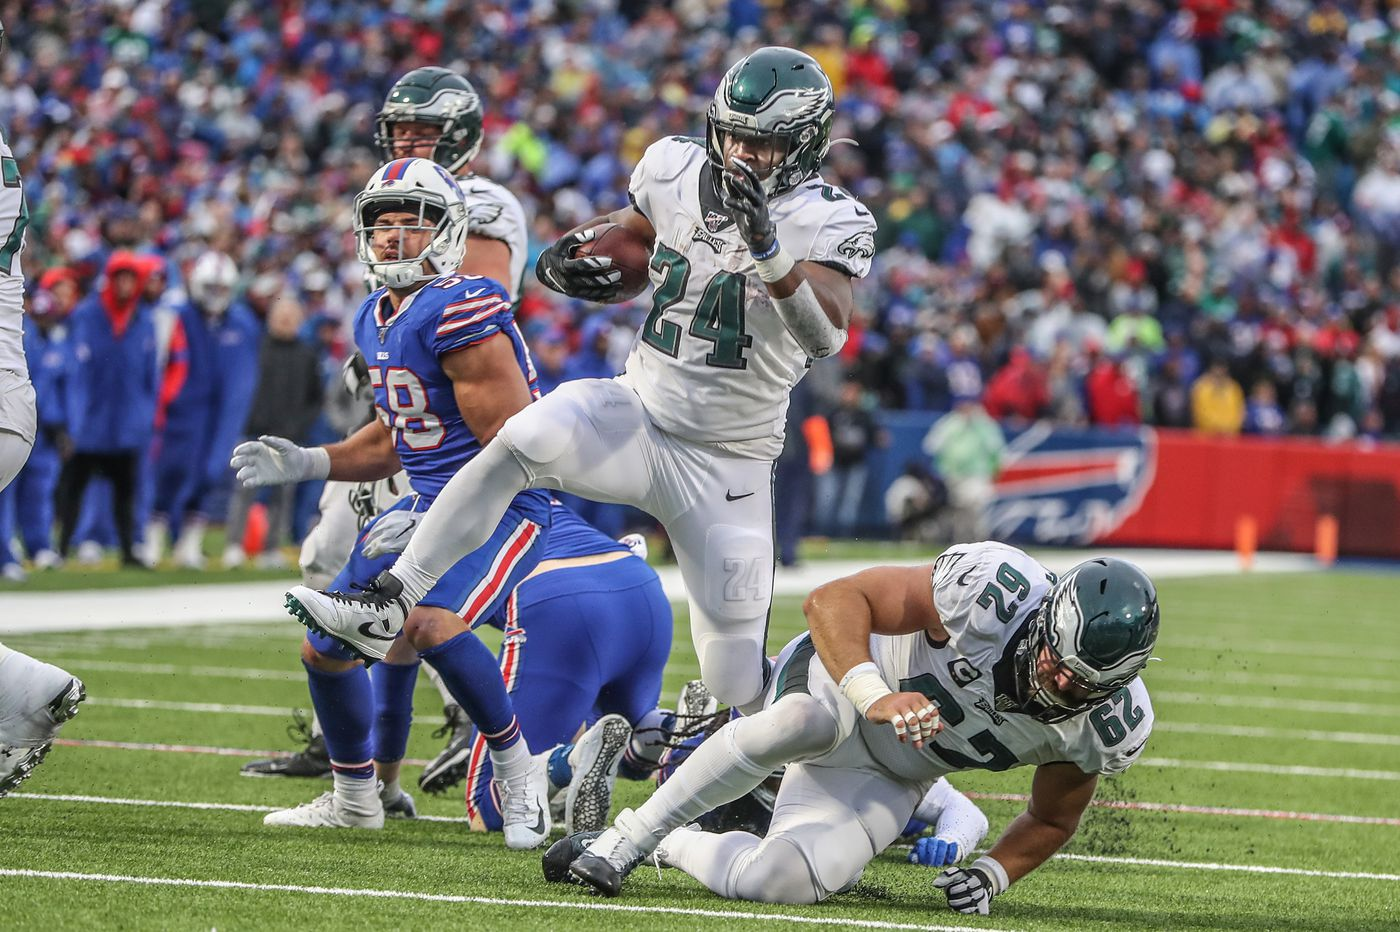 Eagles' rare double-digit lead enabled their run-first attack, potent pass rush against Buffalo Bills